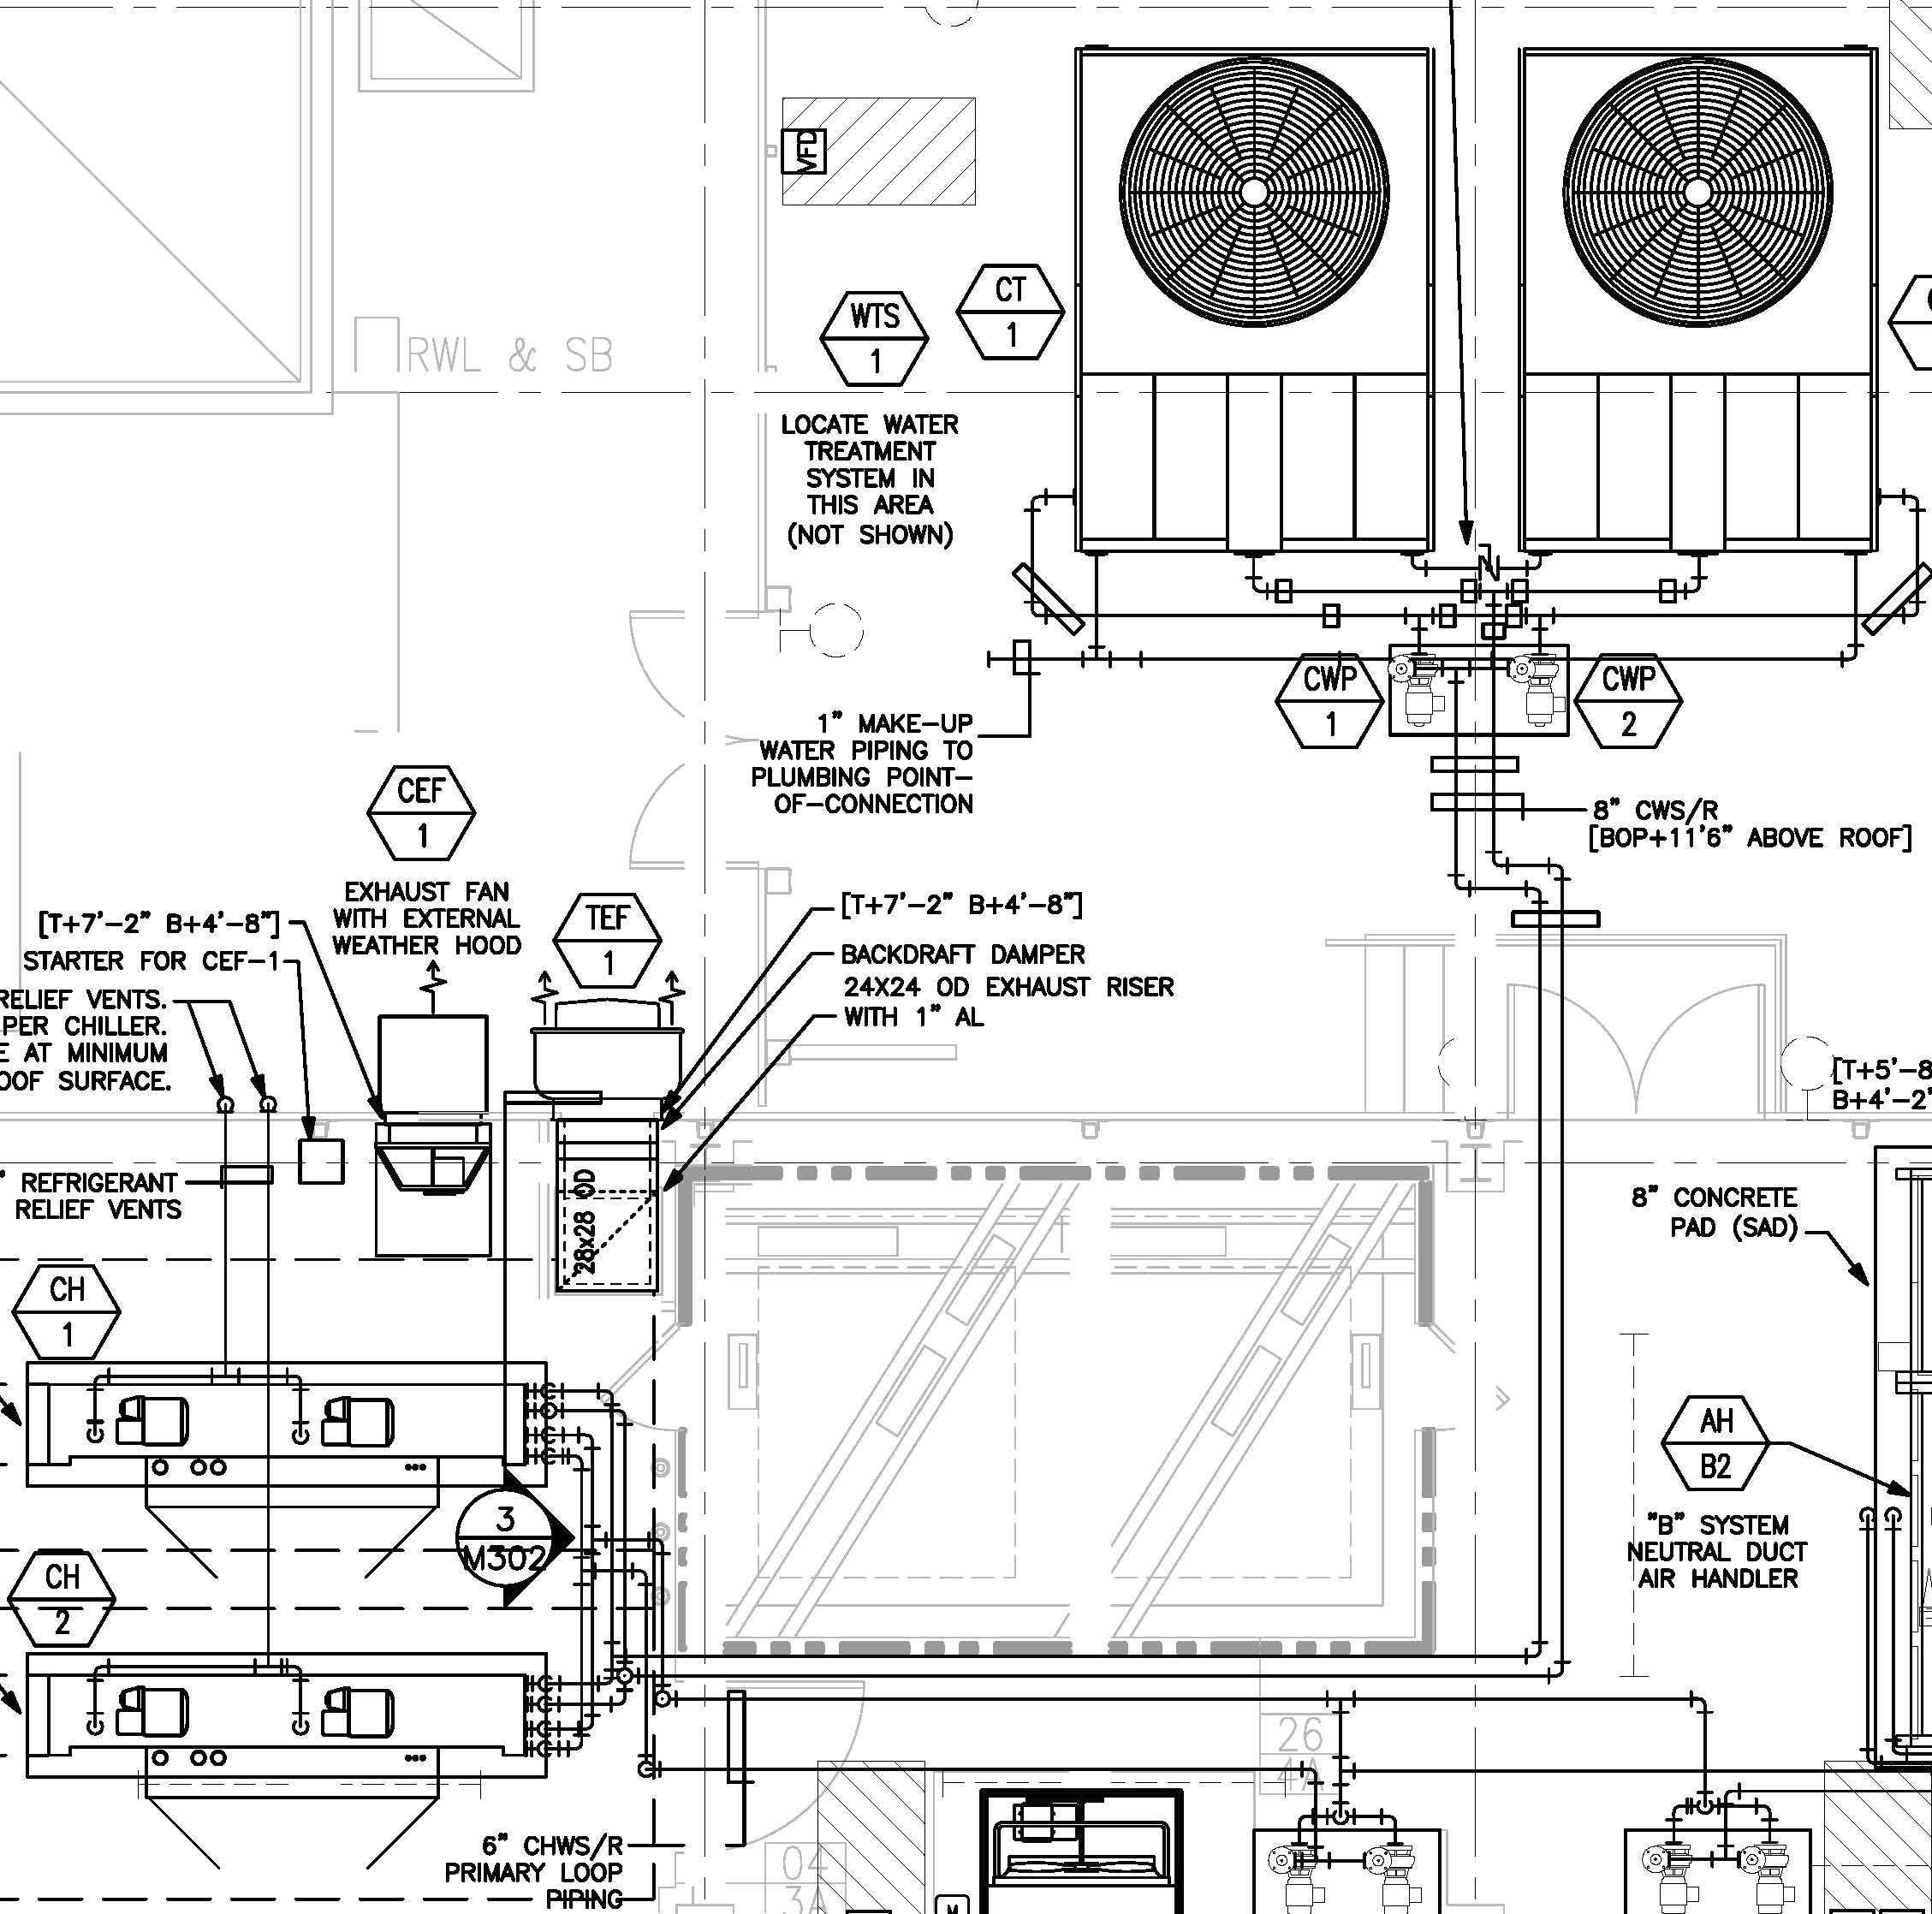 First pany Air Handler Wiring Diagram Simple Air Conditioner Wiring Diagram Picture Download